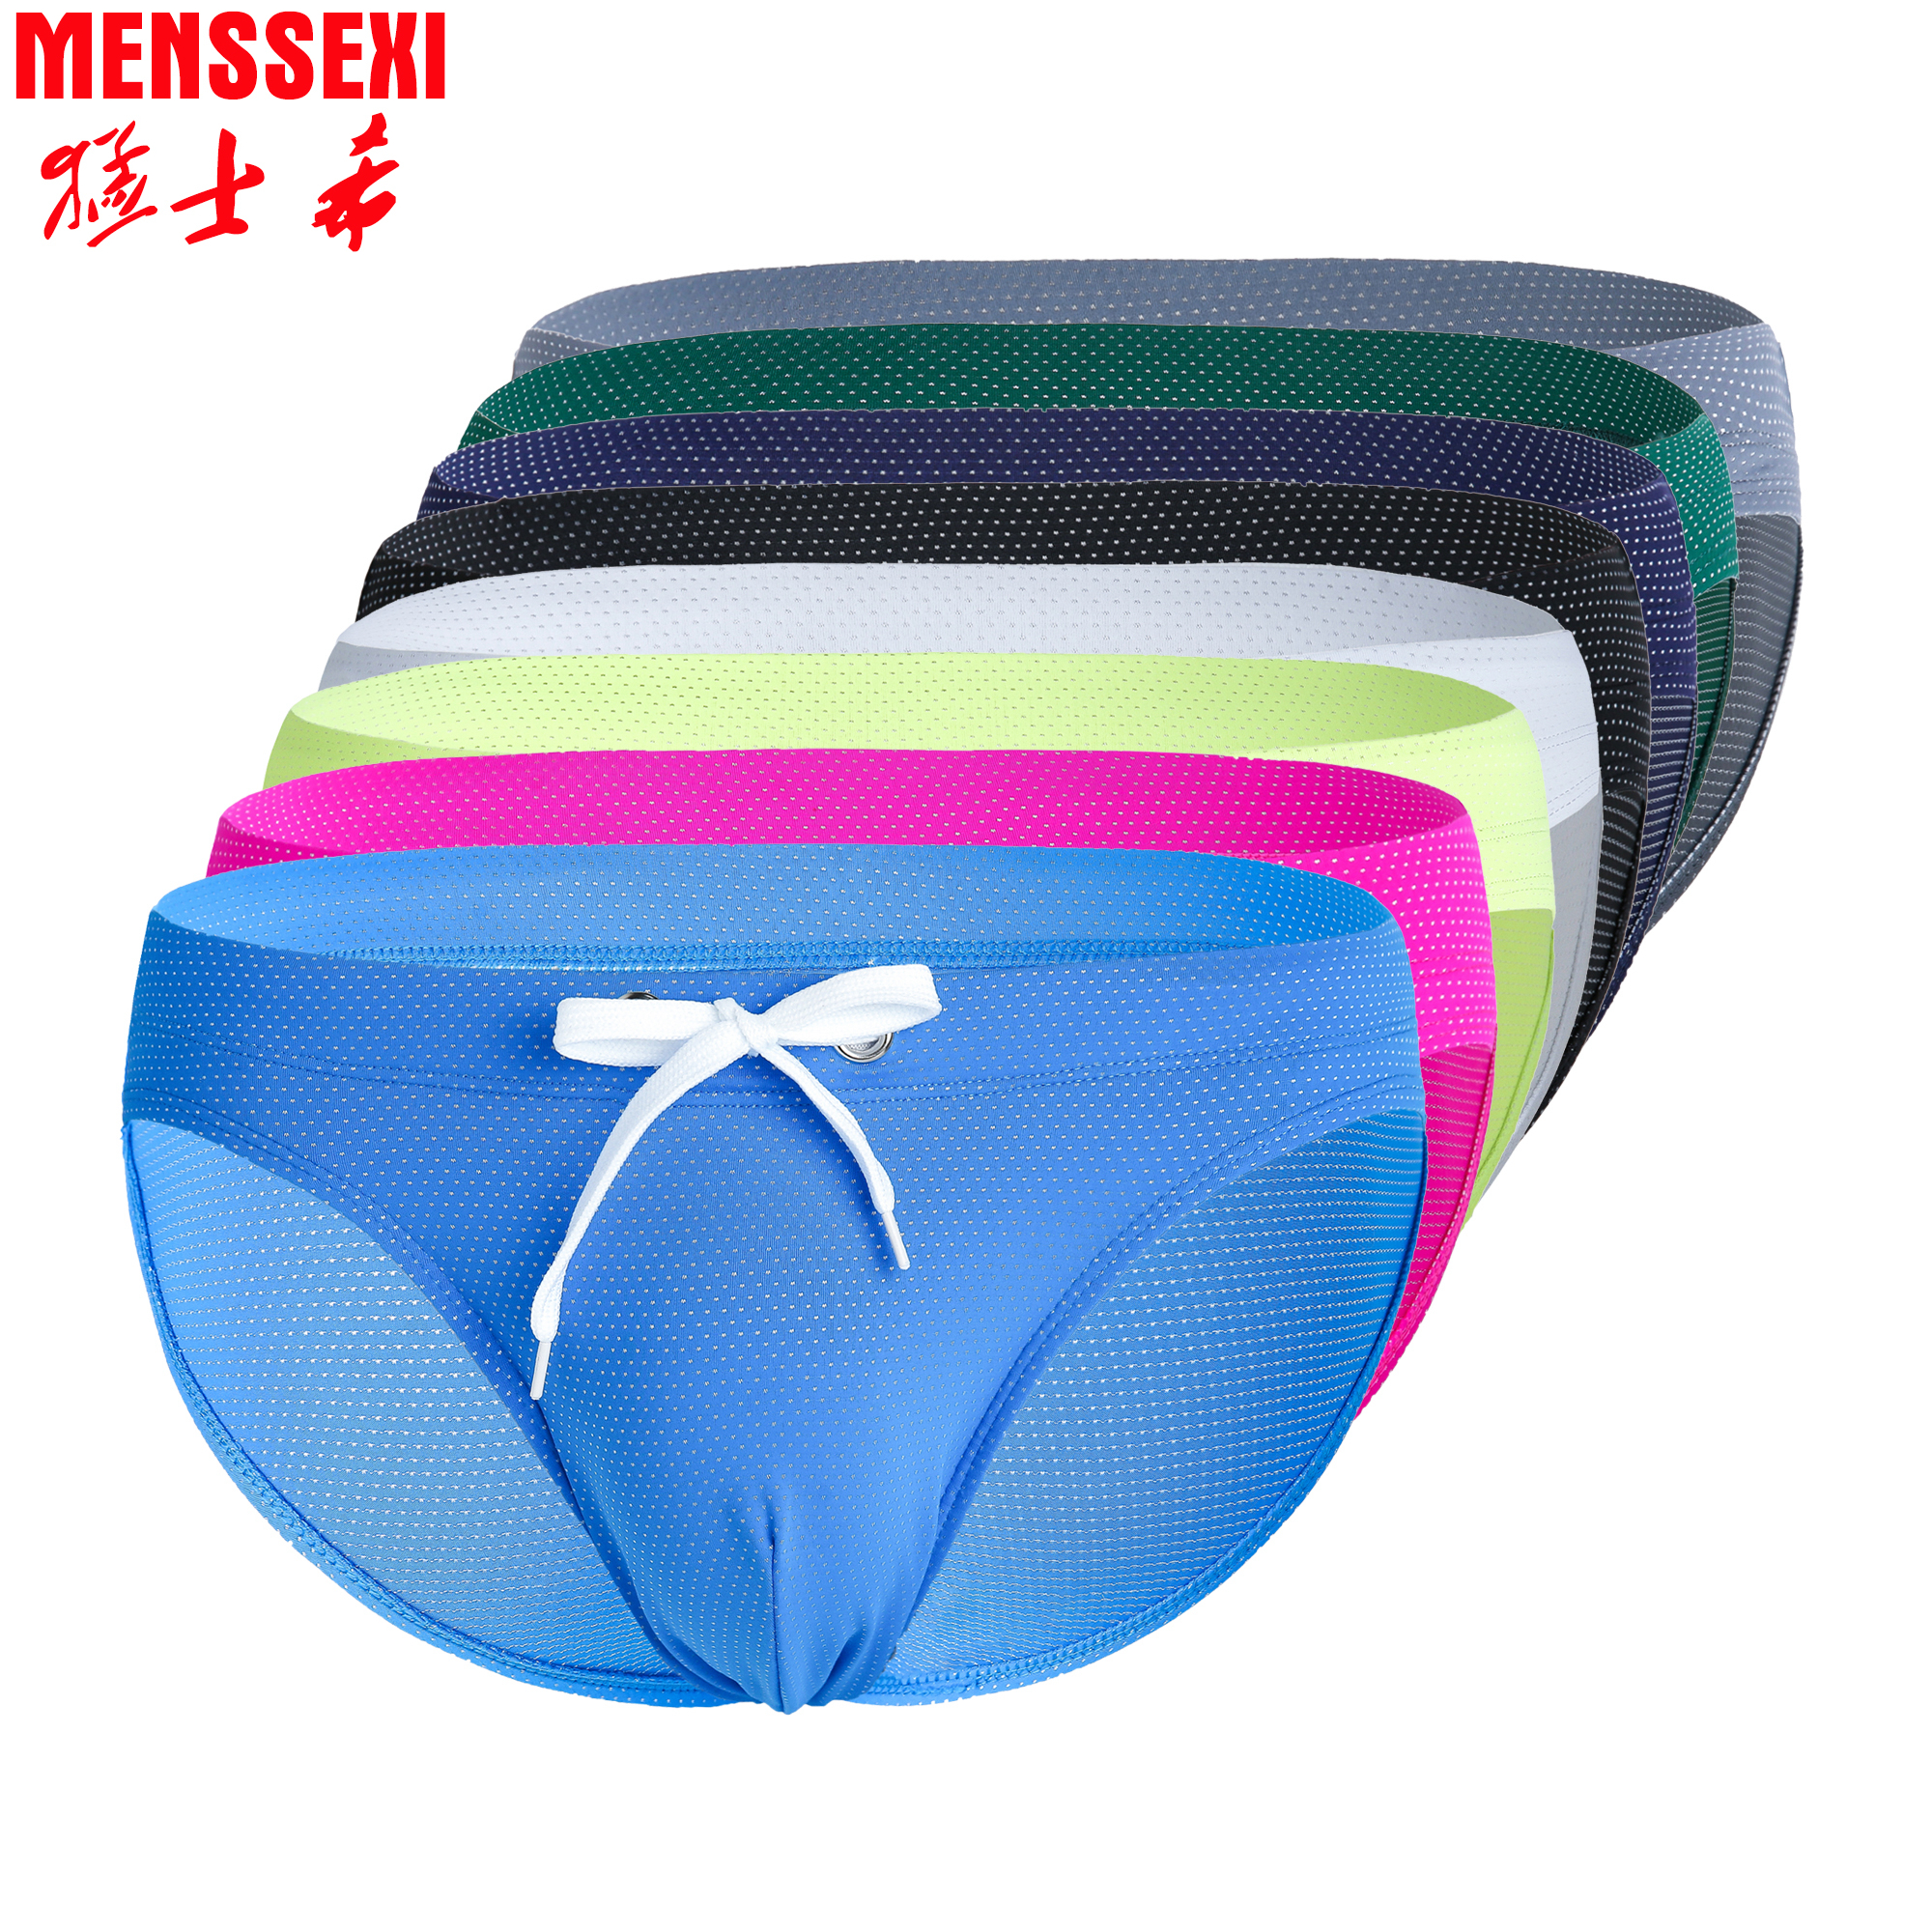 High Quality MENSSEXI 2020 New Swimwear Men Swim Briefs Sexy Neon Bikini Low Rise Gay Bulge Pouch Nylon Swimsuit Pink